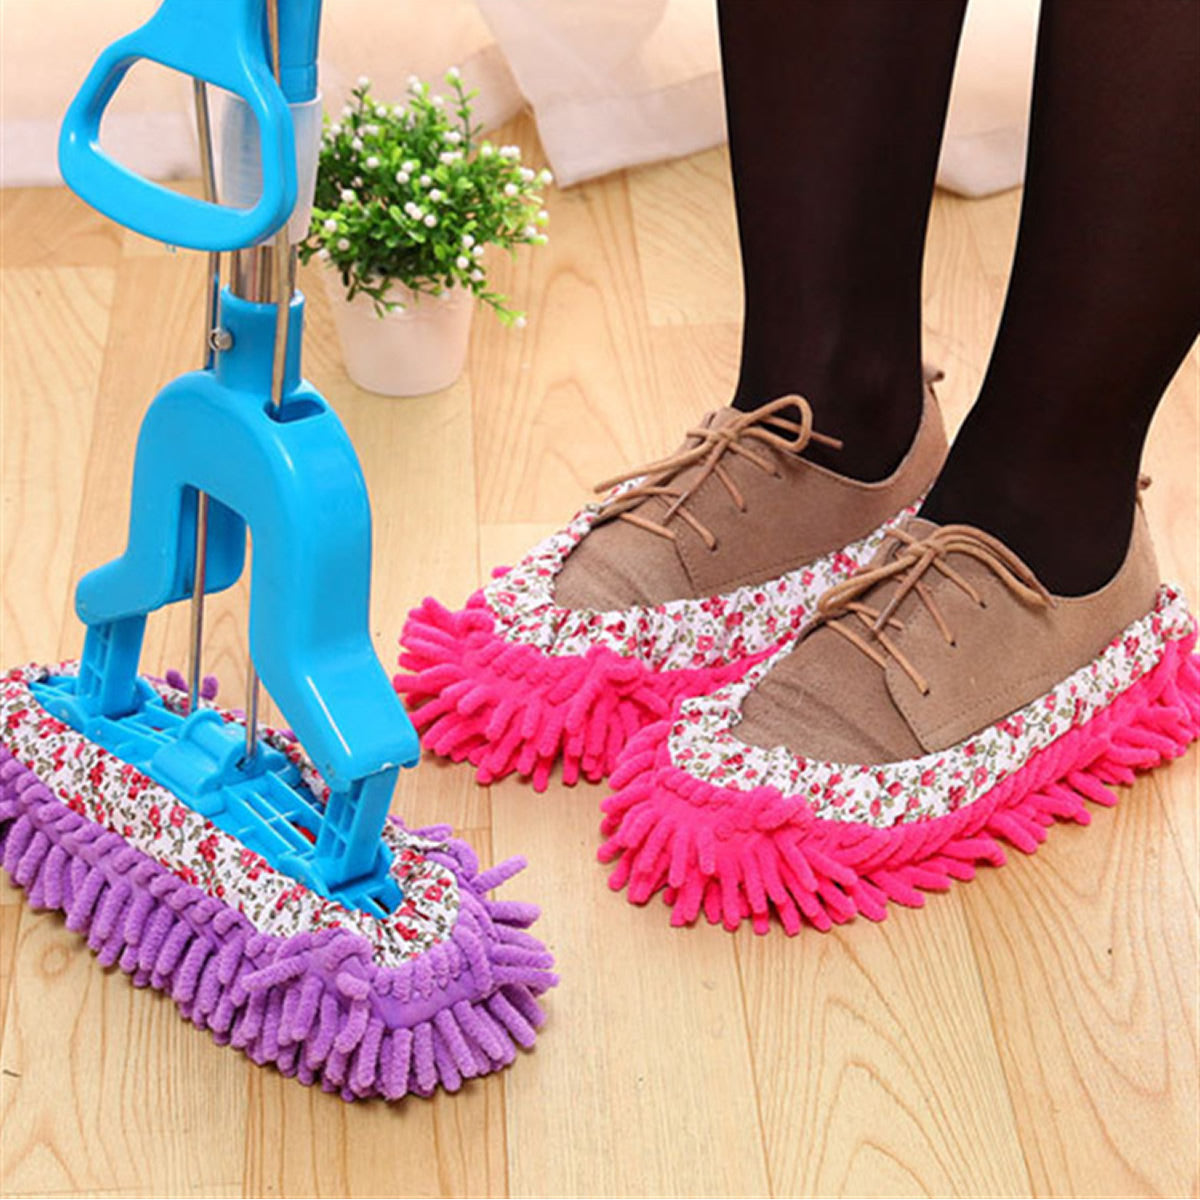 shopify-Lazy Maid Quick Mop Slip-On Slippers 3 prs / 6 pcs-5